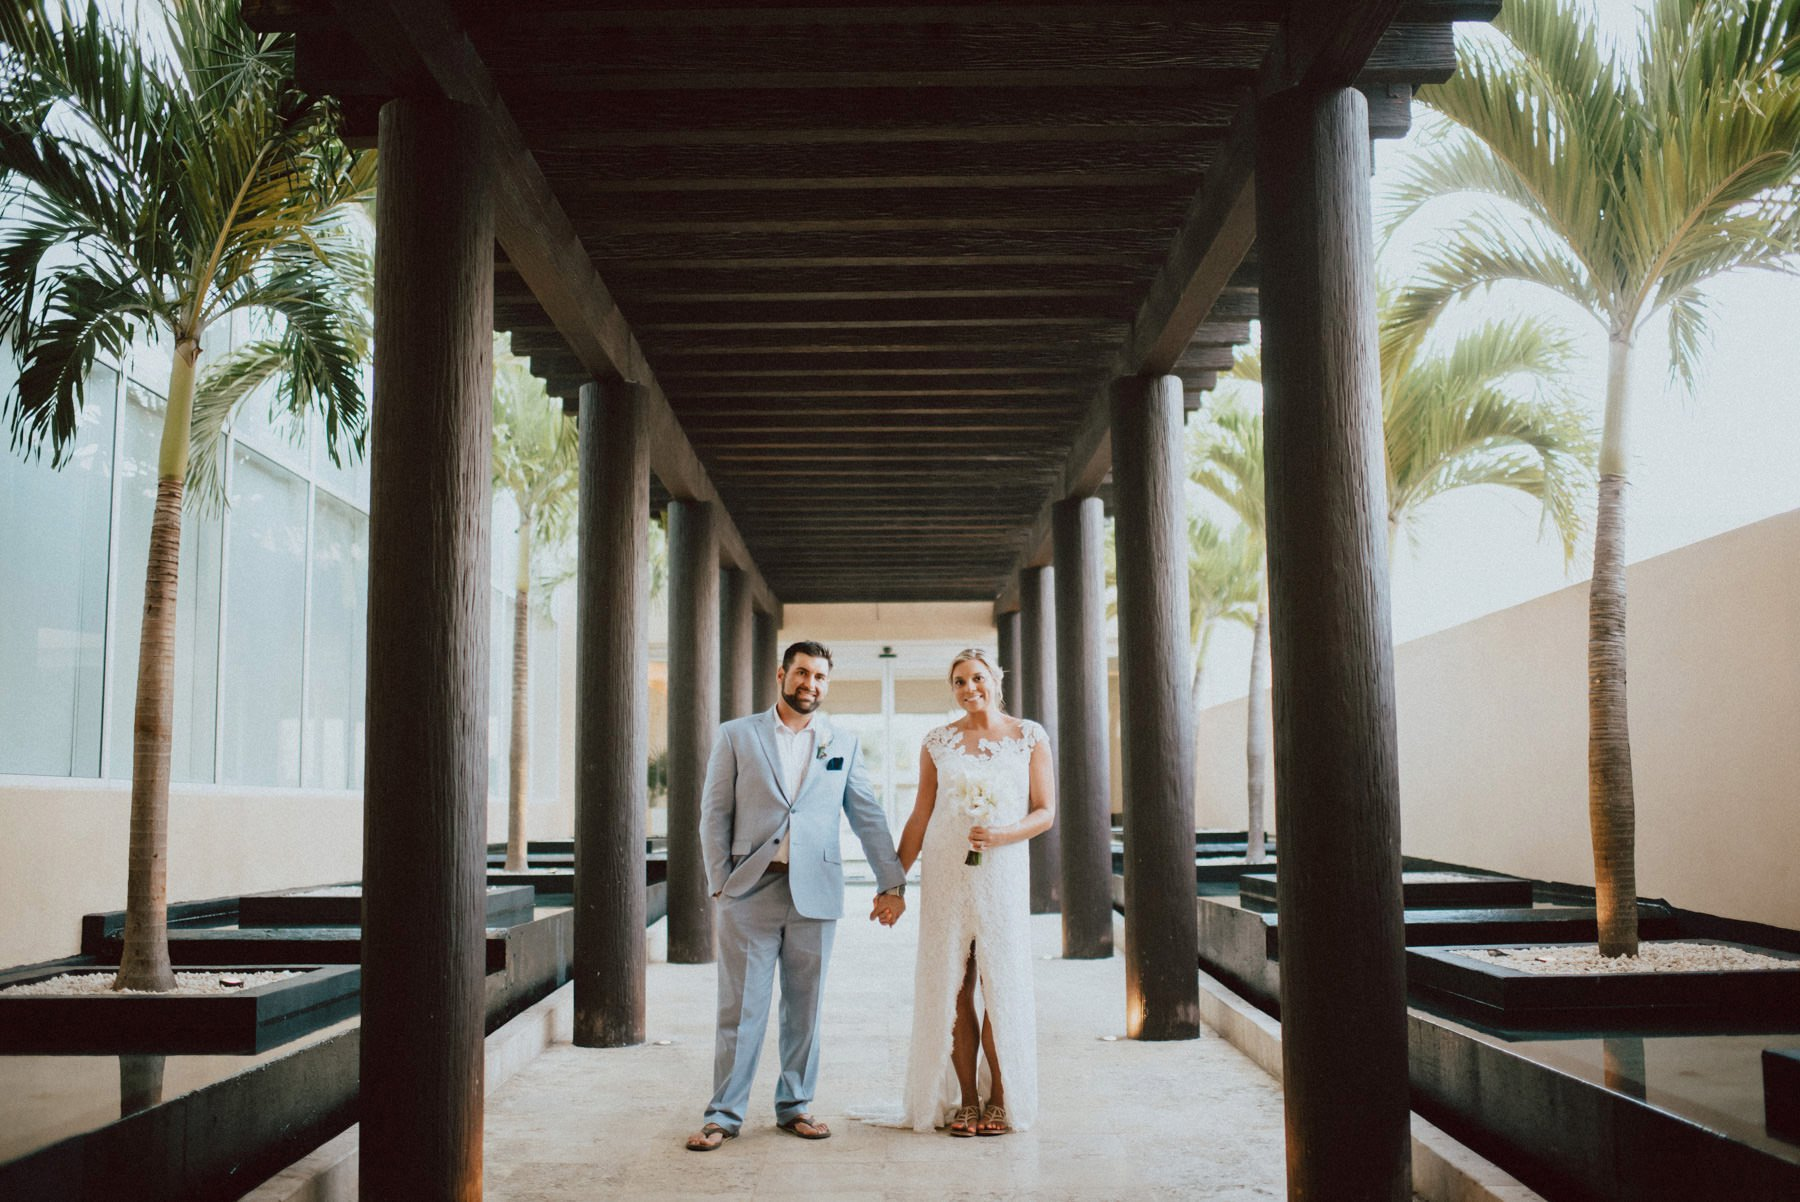 now-jade-riviera-cancun-mexico-wedding-photographer-82.jpg